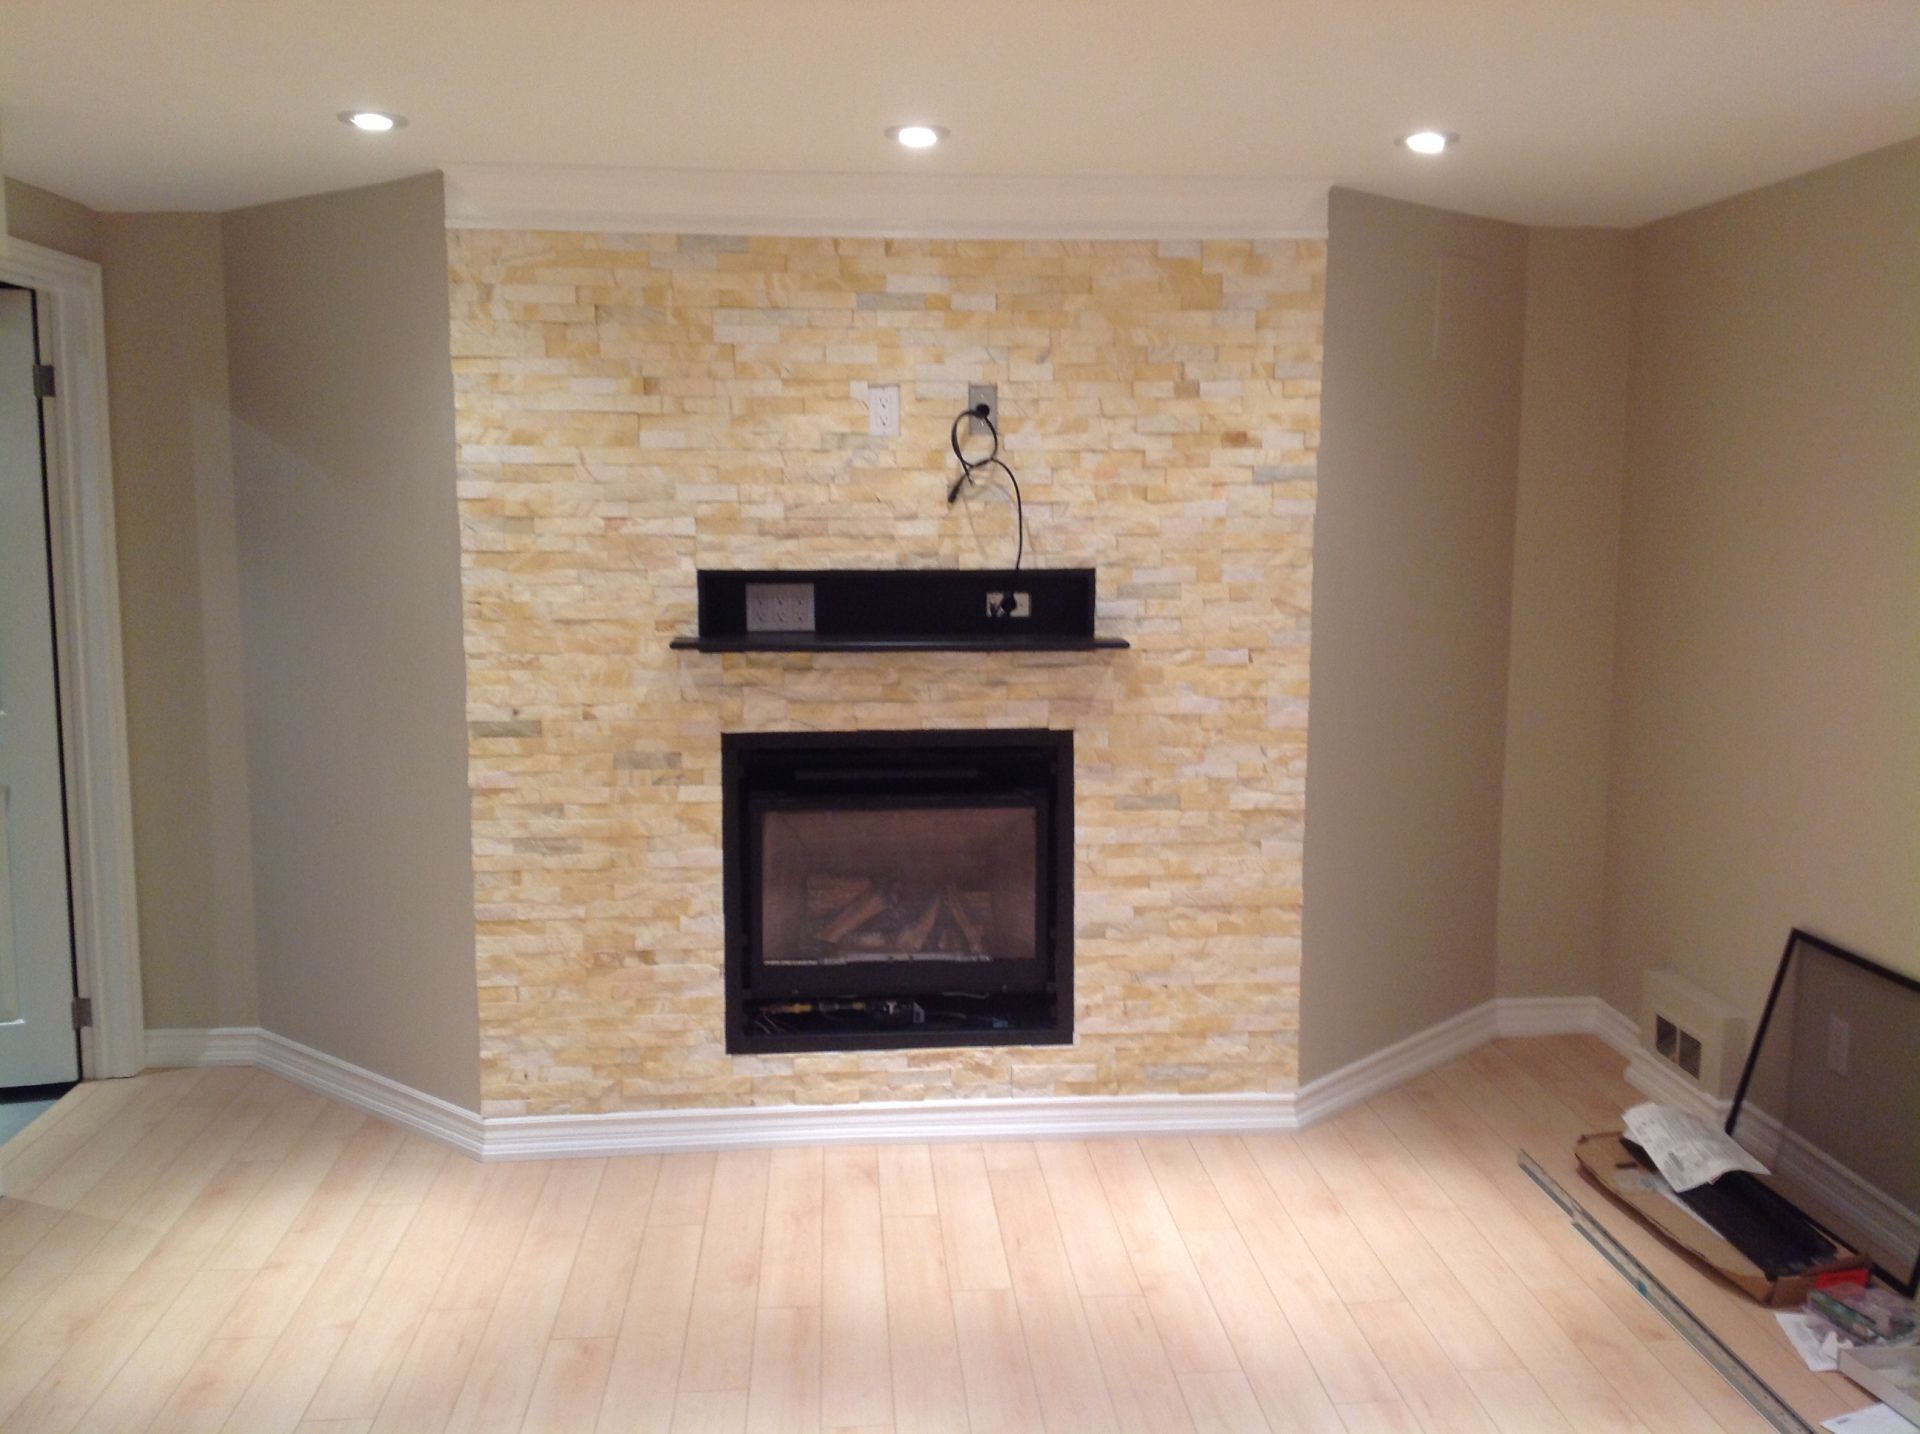 Fireplace with mounted tv area